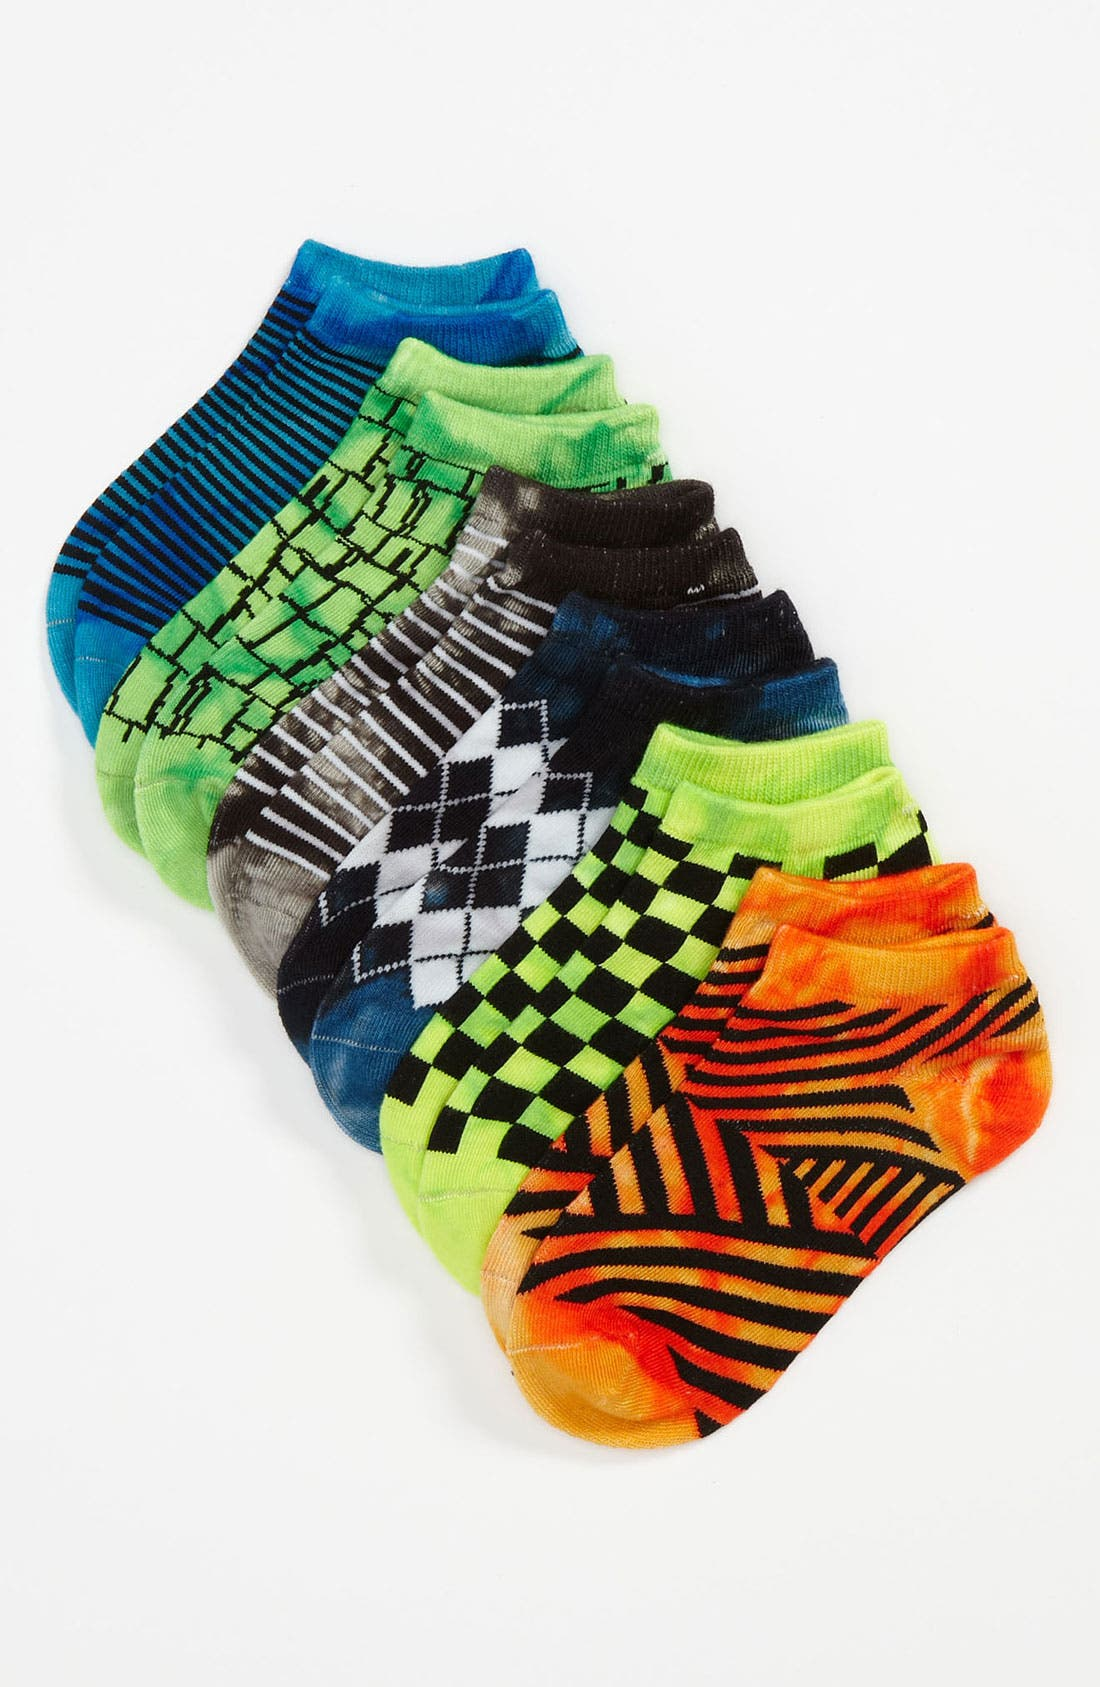 Alternate Image 1 Selected - Nordstrom 'Pop Mix' Socks (6-Pack) (Kids)